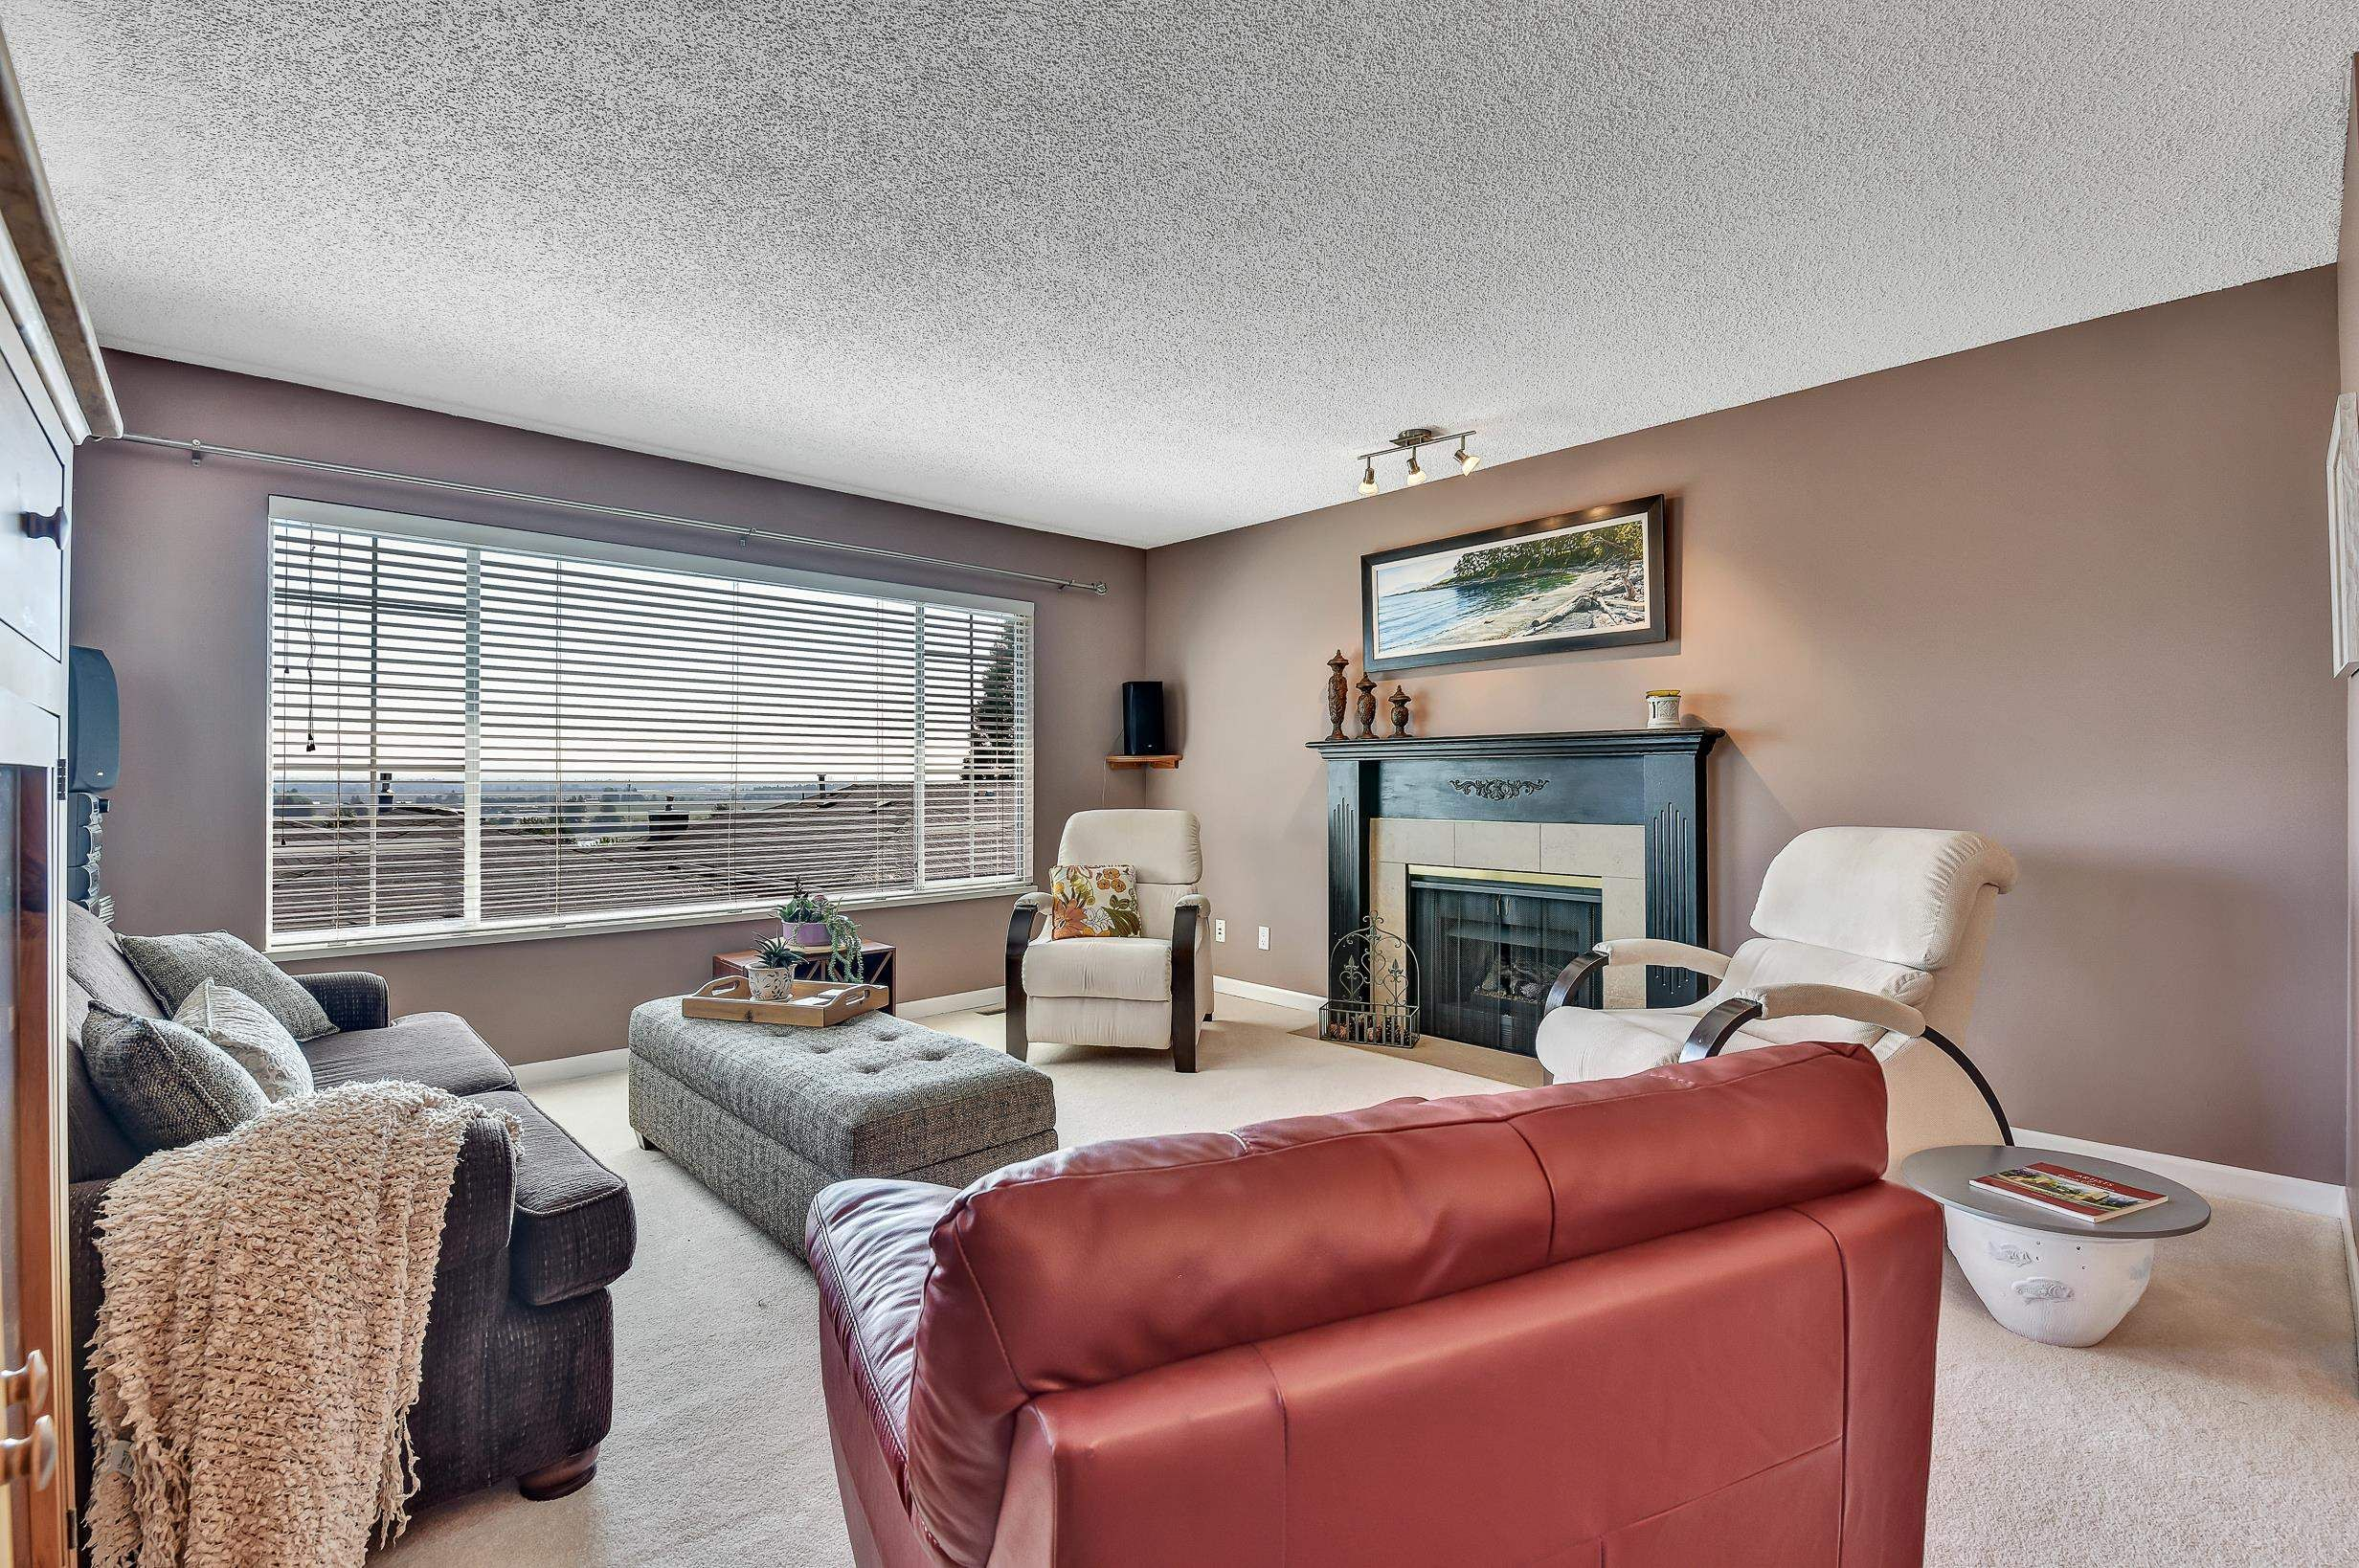 """Photo 9: Photos: 208 1140 CASTLE Crescent in Port Coquitlam: Citadel PQ Townhouse for sale in """"THE UPLANDS"""" : MLS®# R2609078"""